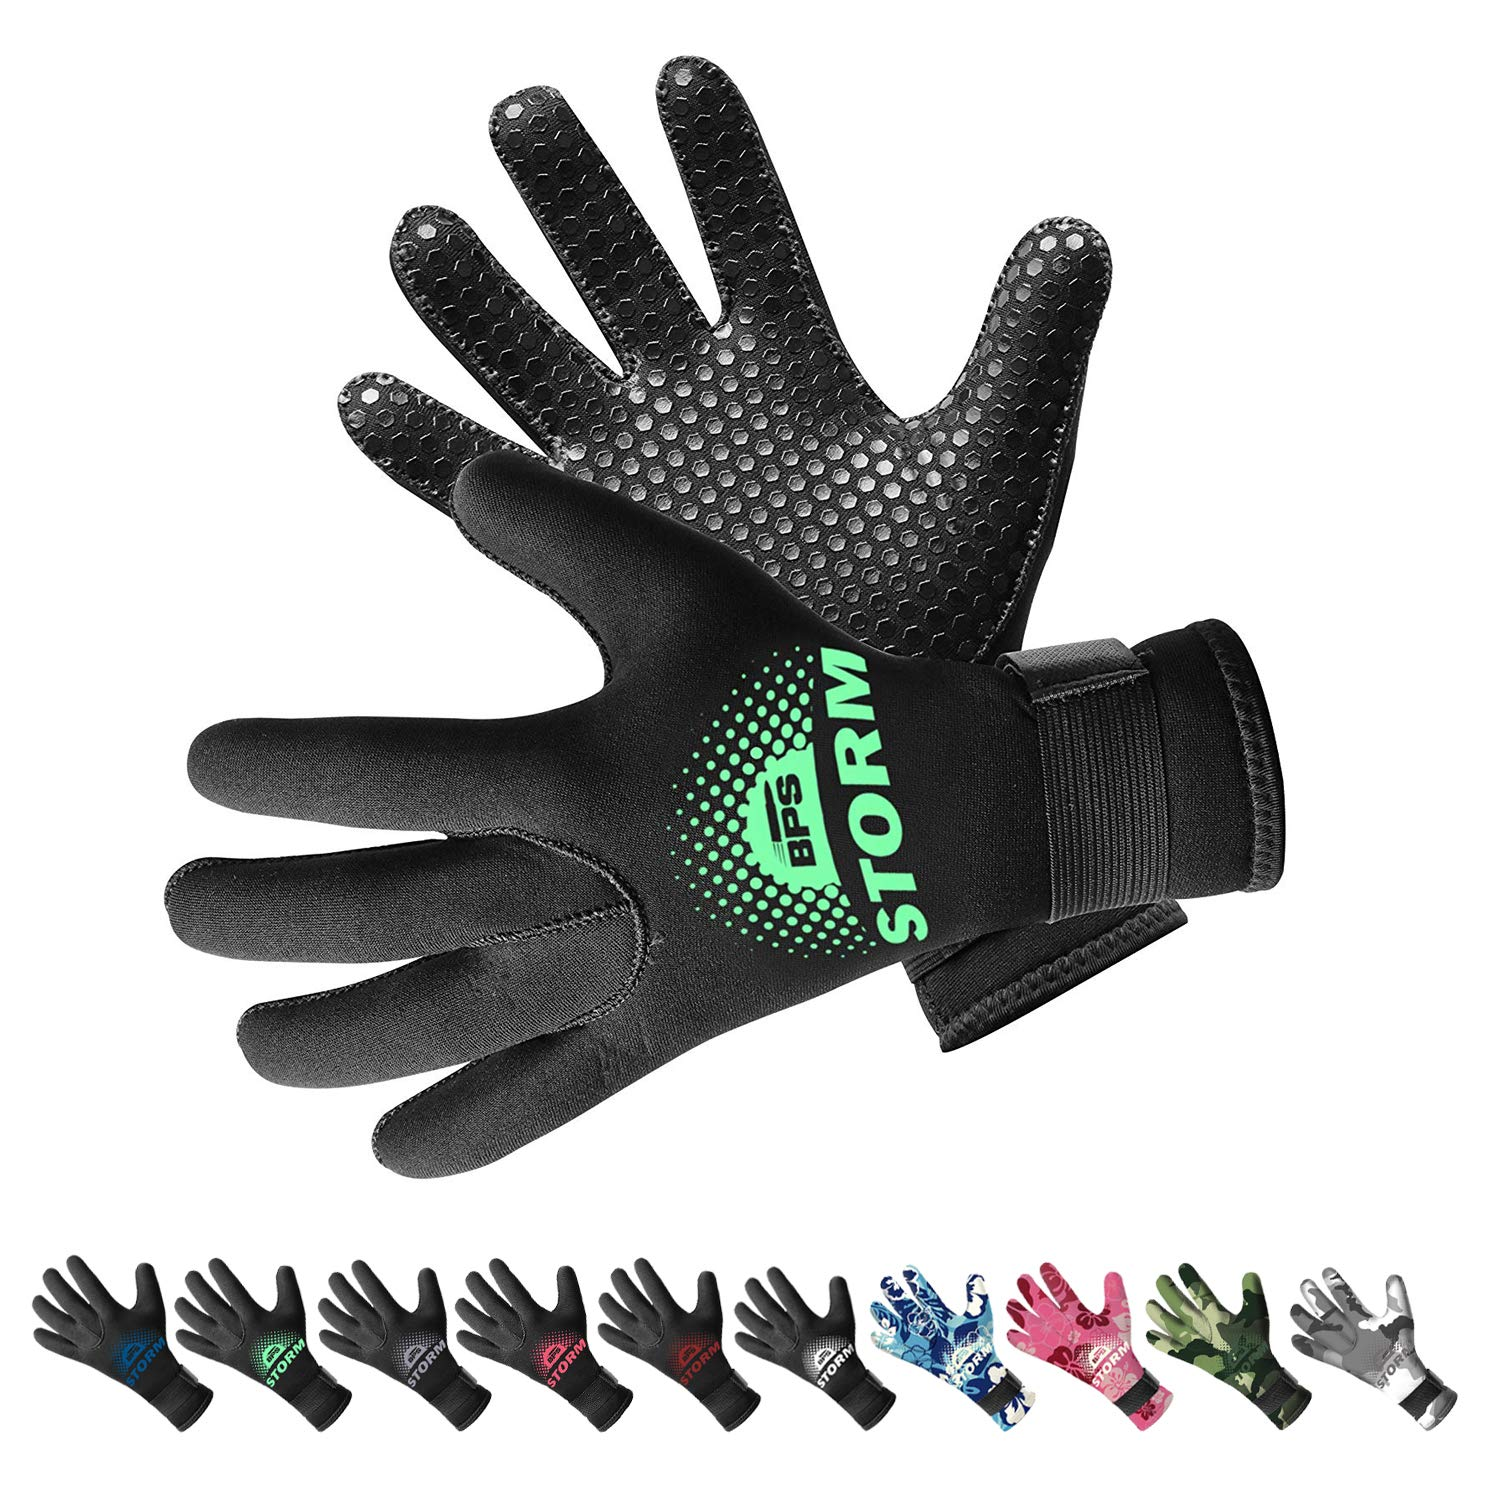 BPS 3mm Neoprene Thermal Gloves with Anti-Slip Palm - Full Hand Gloves for Sailing, Spearfishing, Paddleboarding, Surf, and Other Water Activities - for Men and Women (Black/Mint Green, XL) by BPS